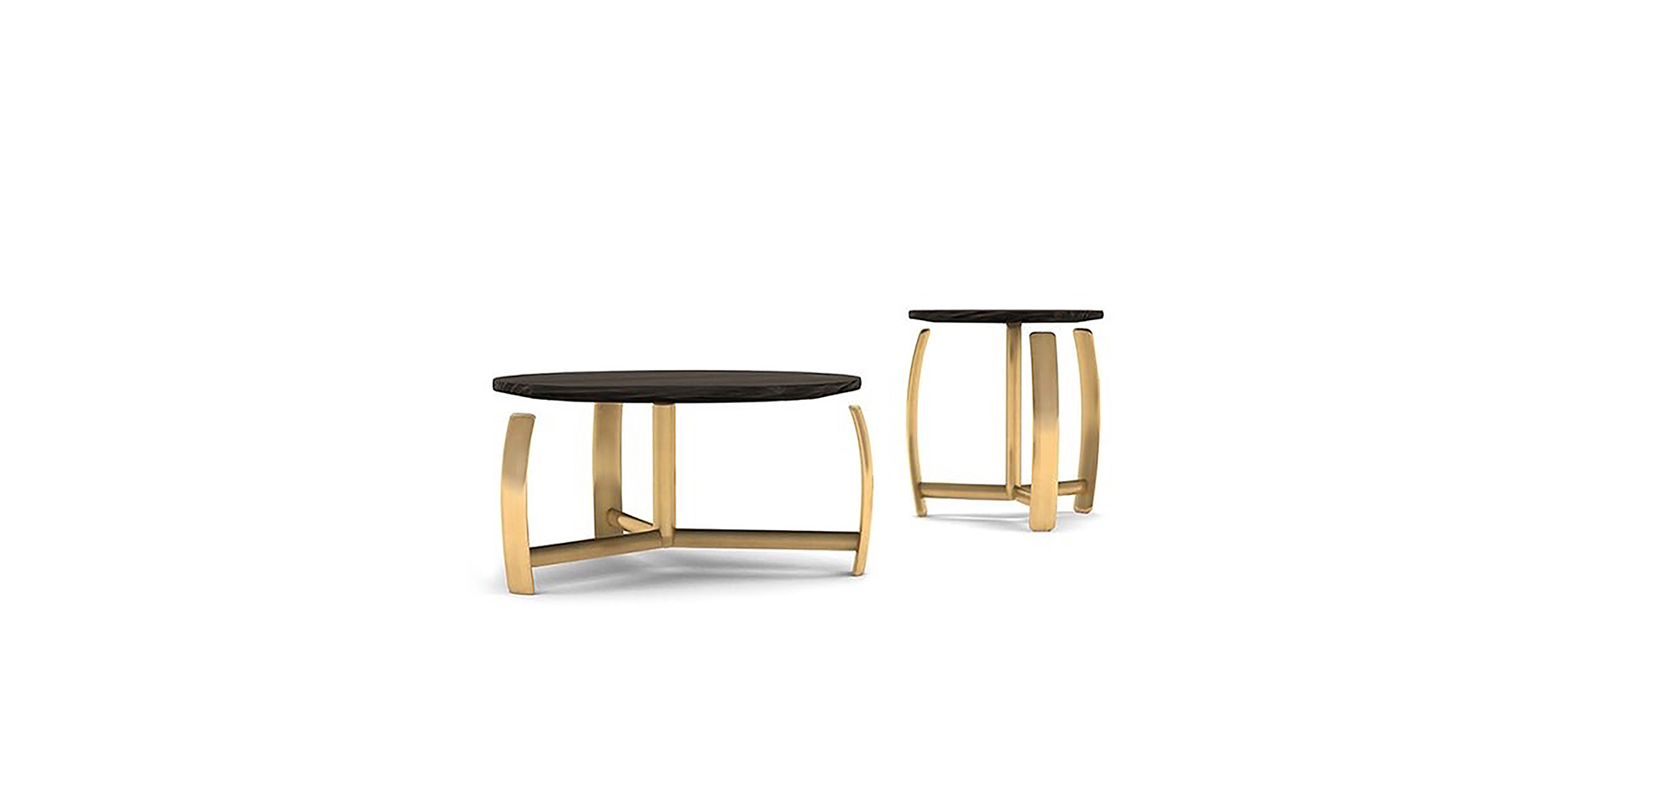 NULL SIDE TABEL BRAND:  FRANK CHOU  WEB:  www.frankchou.com Null Side Table is made of metal and wood. It's more like an artwork, rooted in traditional oriental implement, the relaxing plump arc is the highlight point of design.